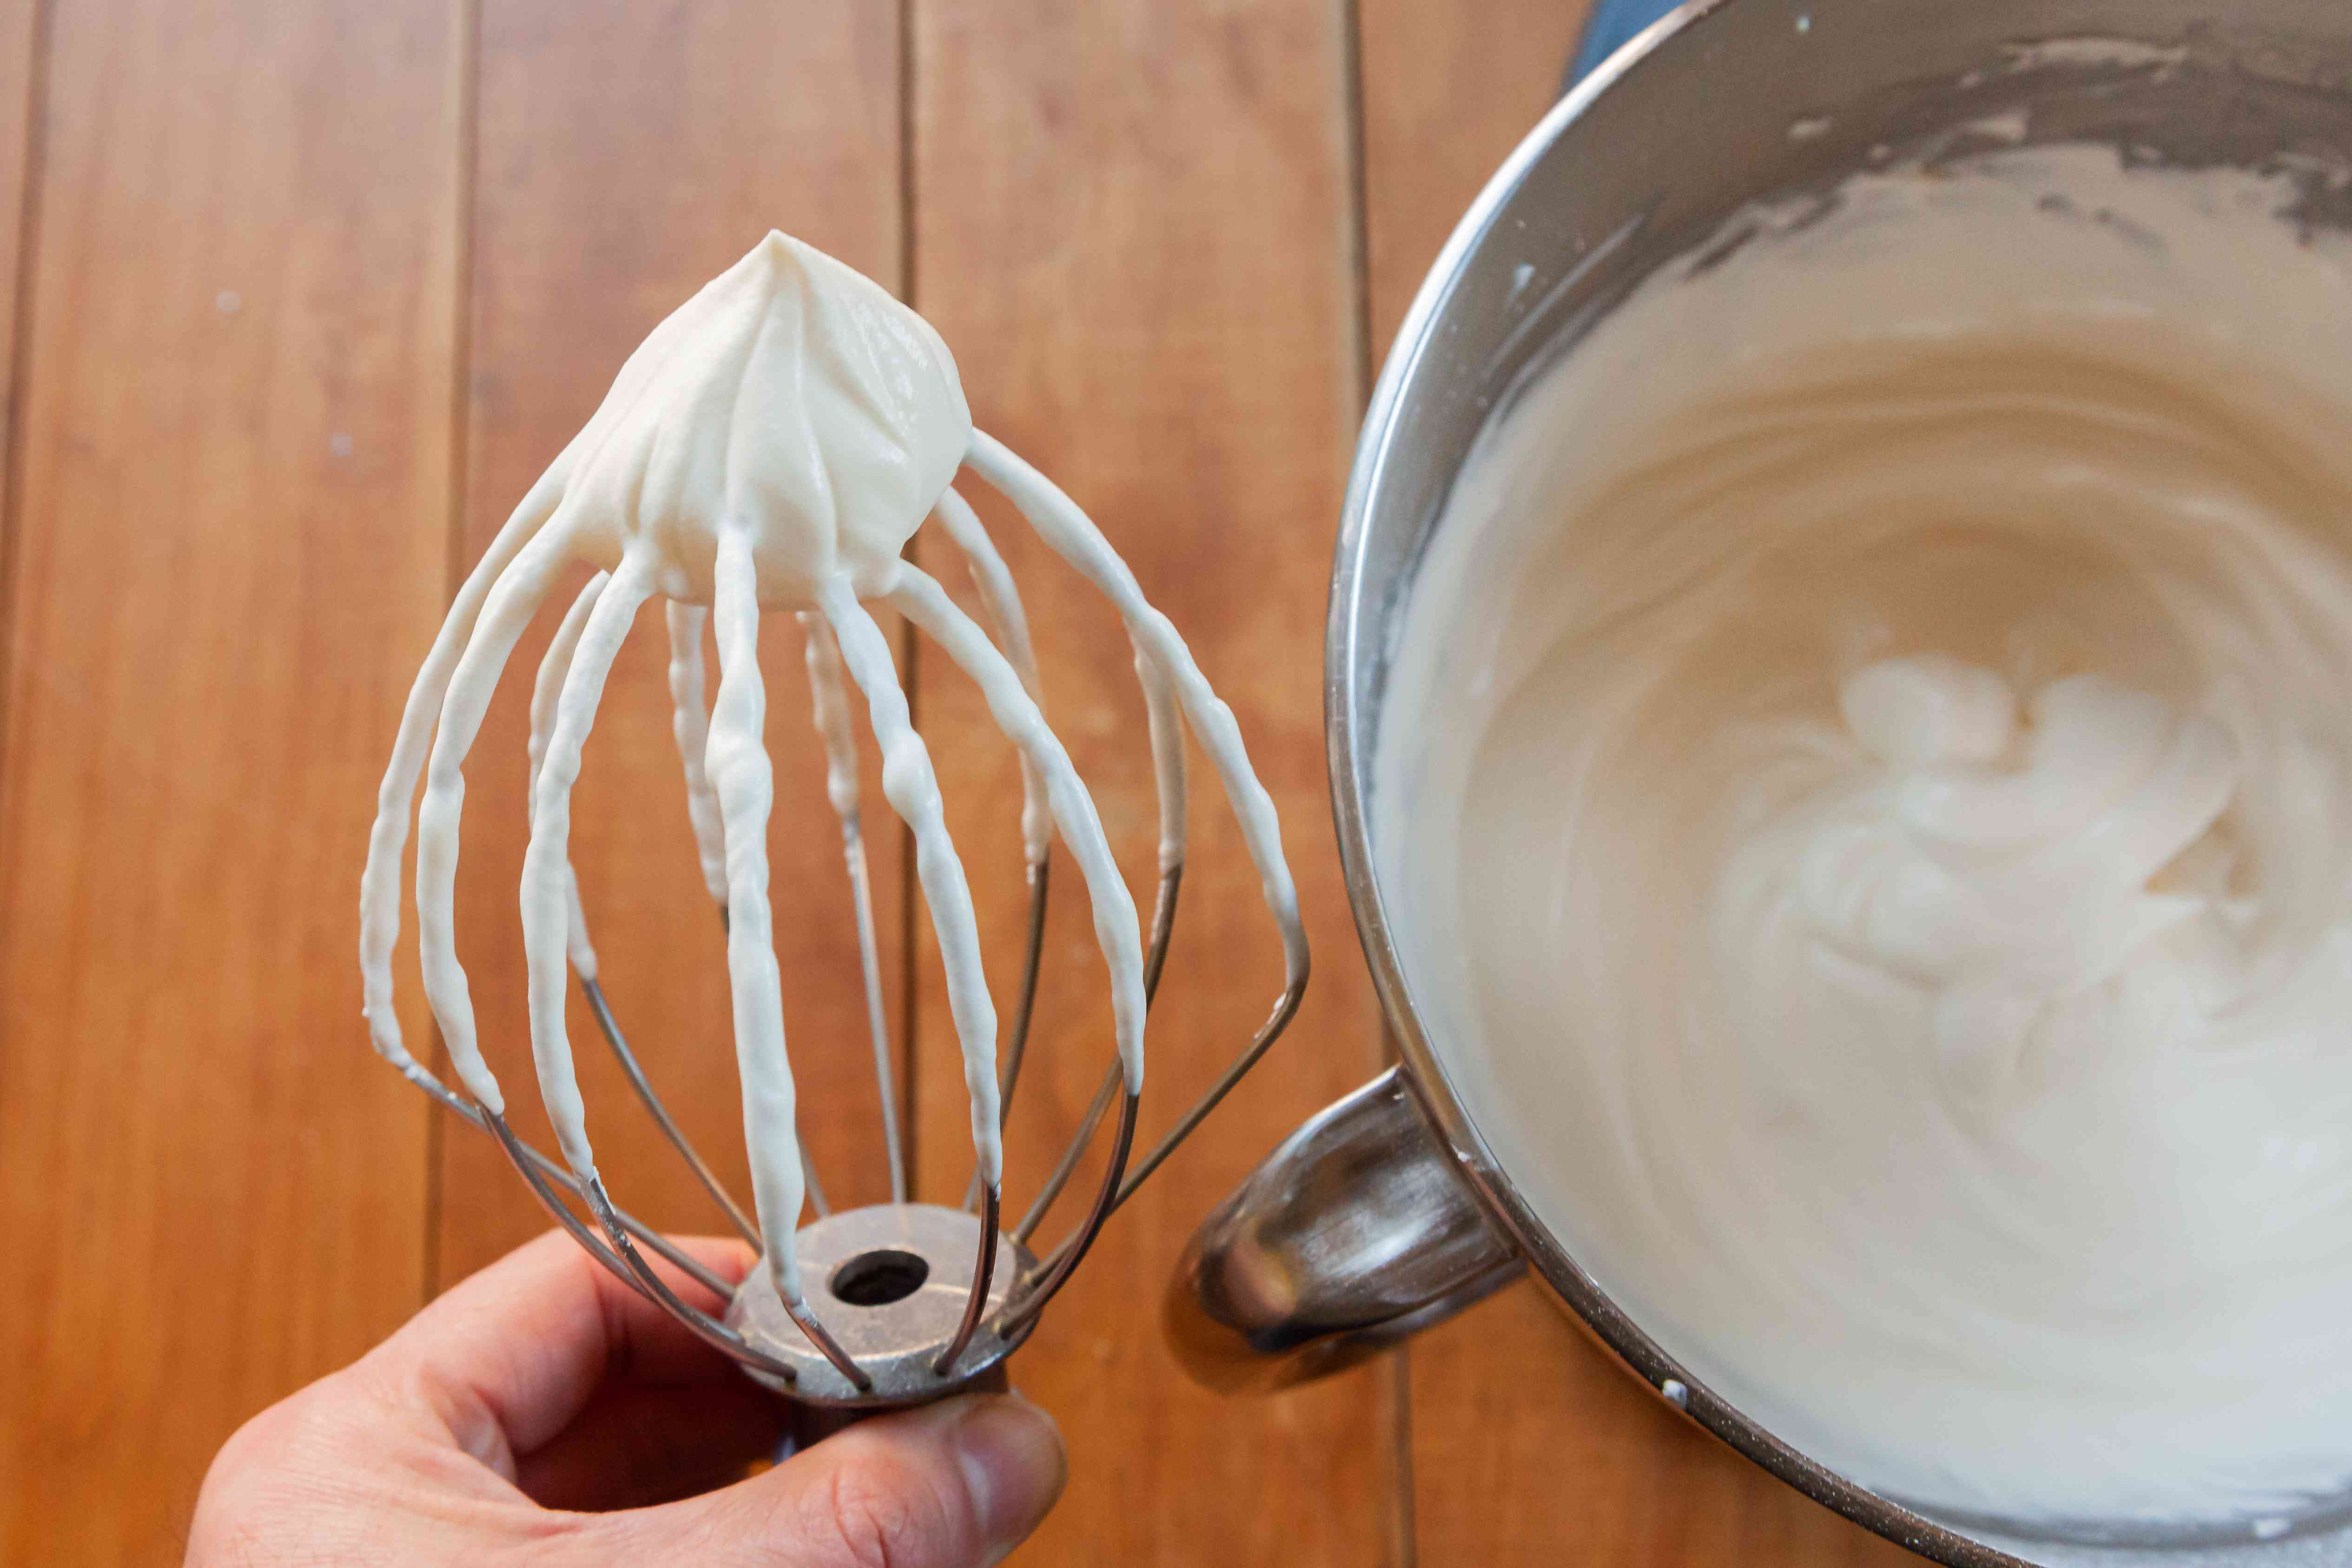 Whipped cream frosting with cream cheese in a mixer bowl and a person holding the whisk attachment next to the bowl.